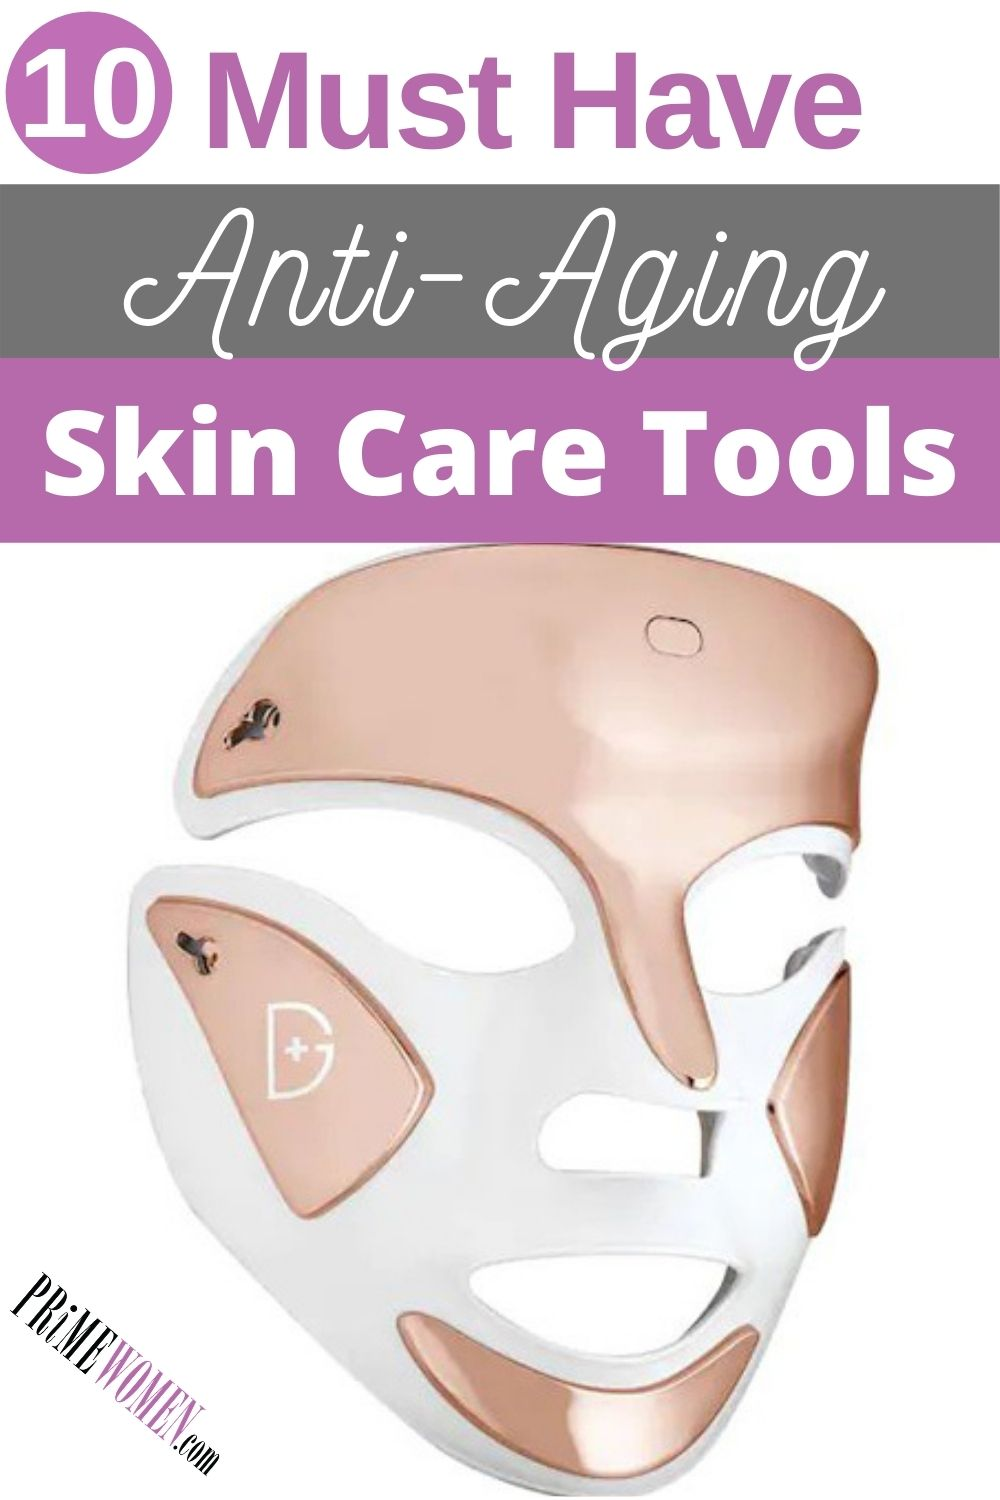 10 Must-have anti-aging skin care tools